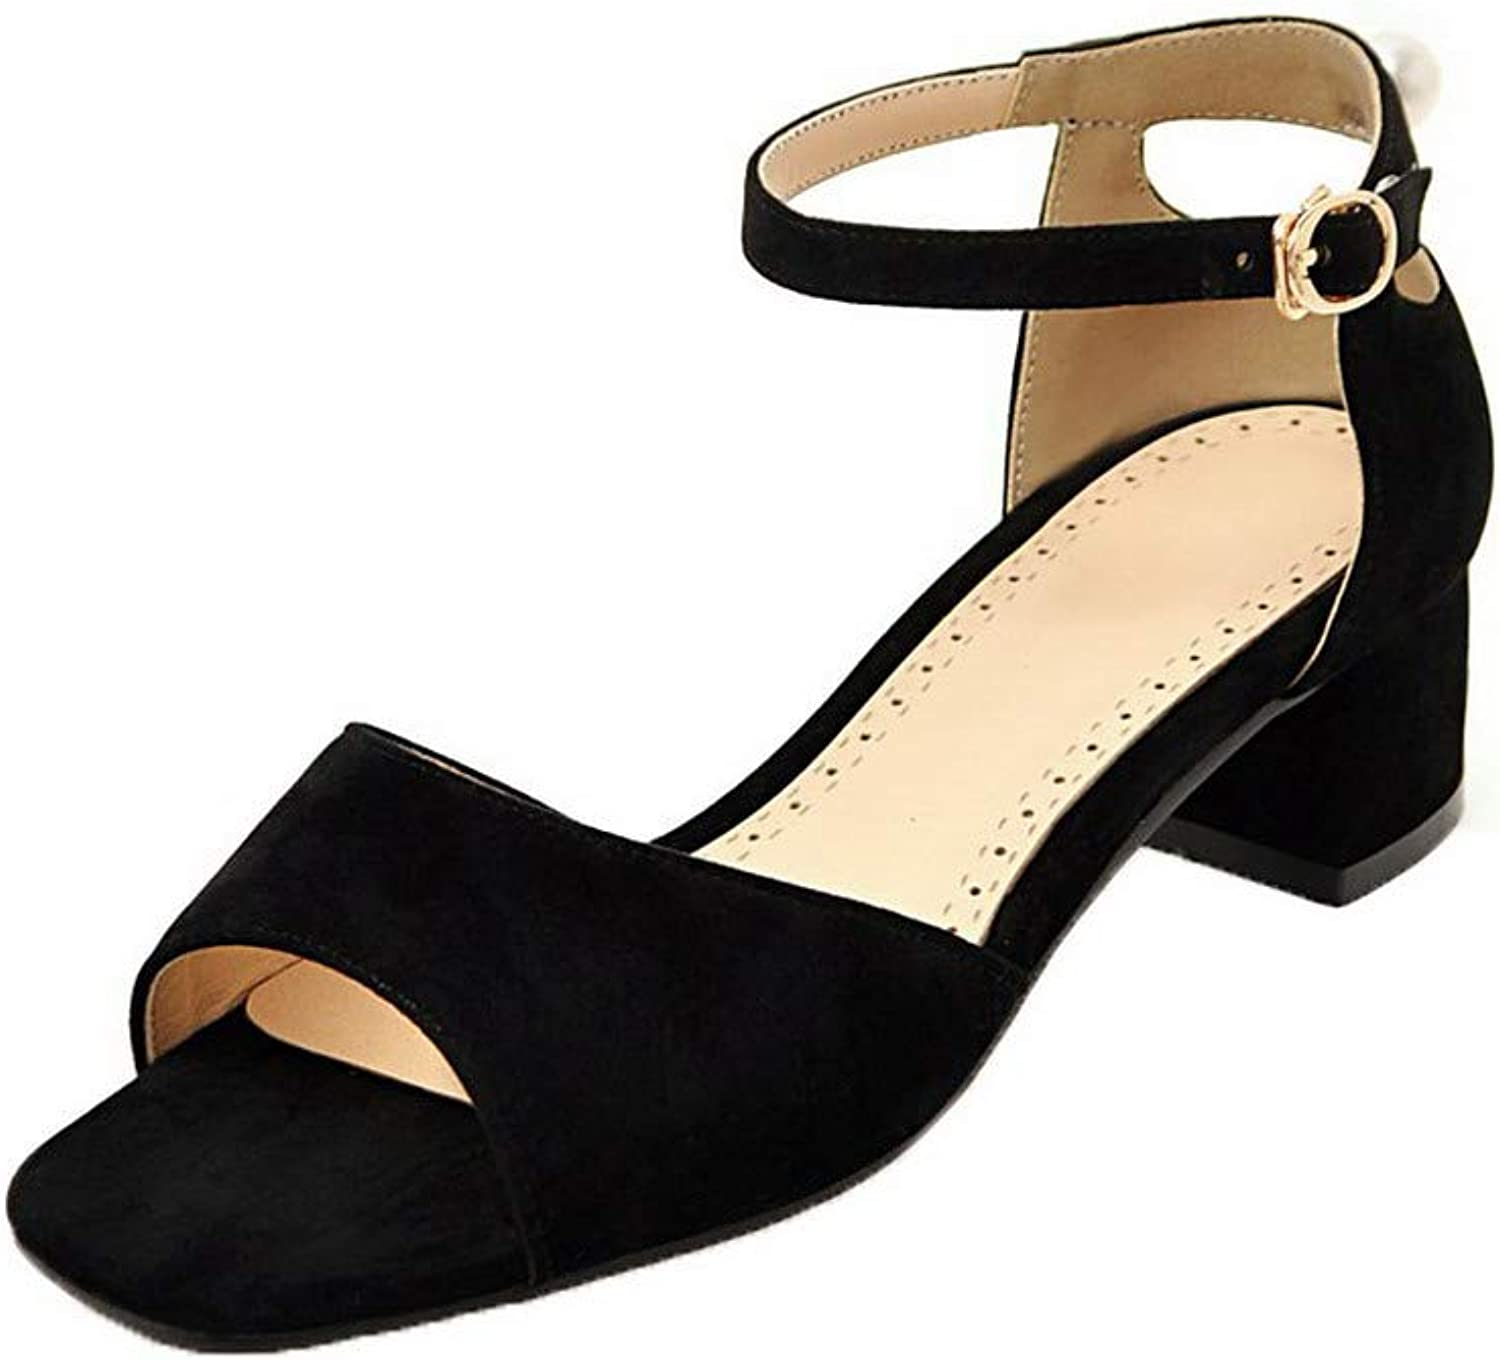 AmoonyFashion Women's Frosted Open-Toe Low-Heels Buckle Solid Sandals, BUTLT007540